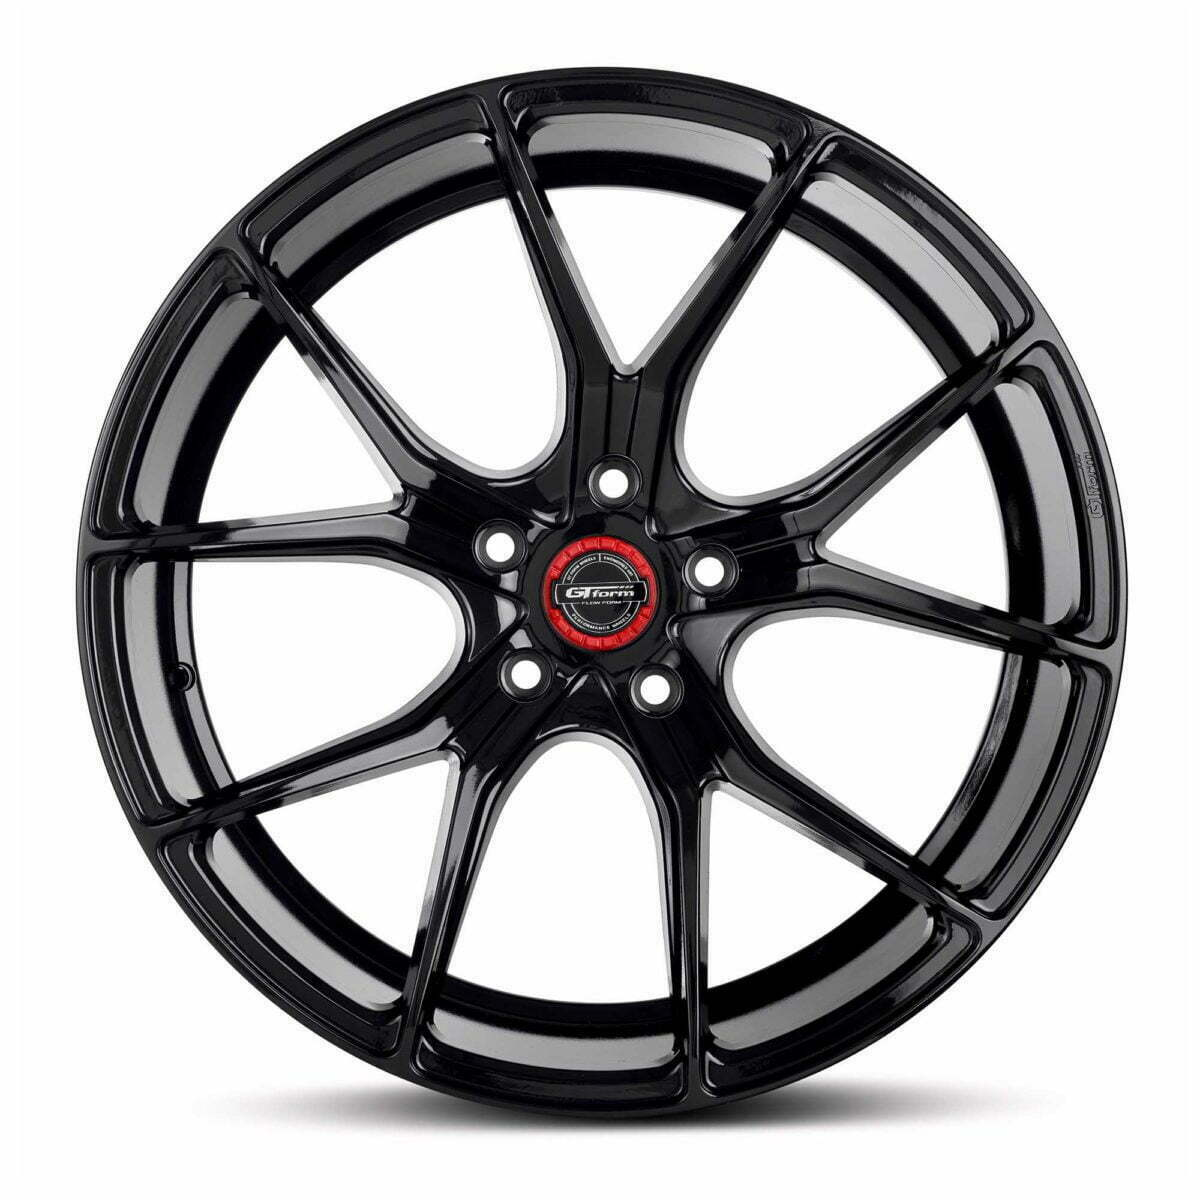 GT form Venom Gloss Black Wheels With Red Centre Cap Performance Rims